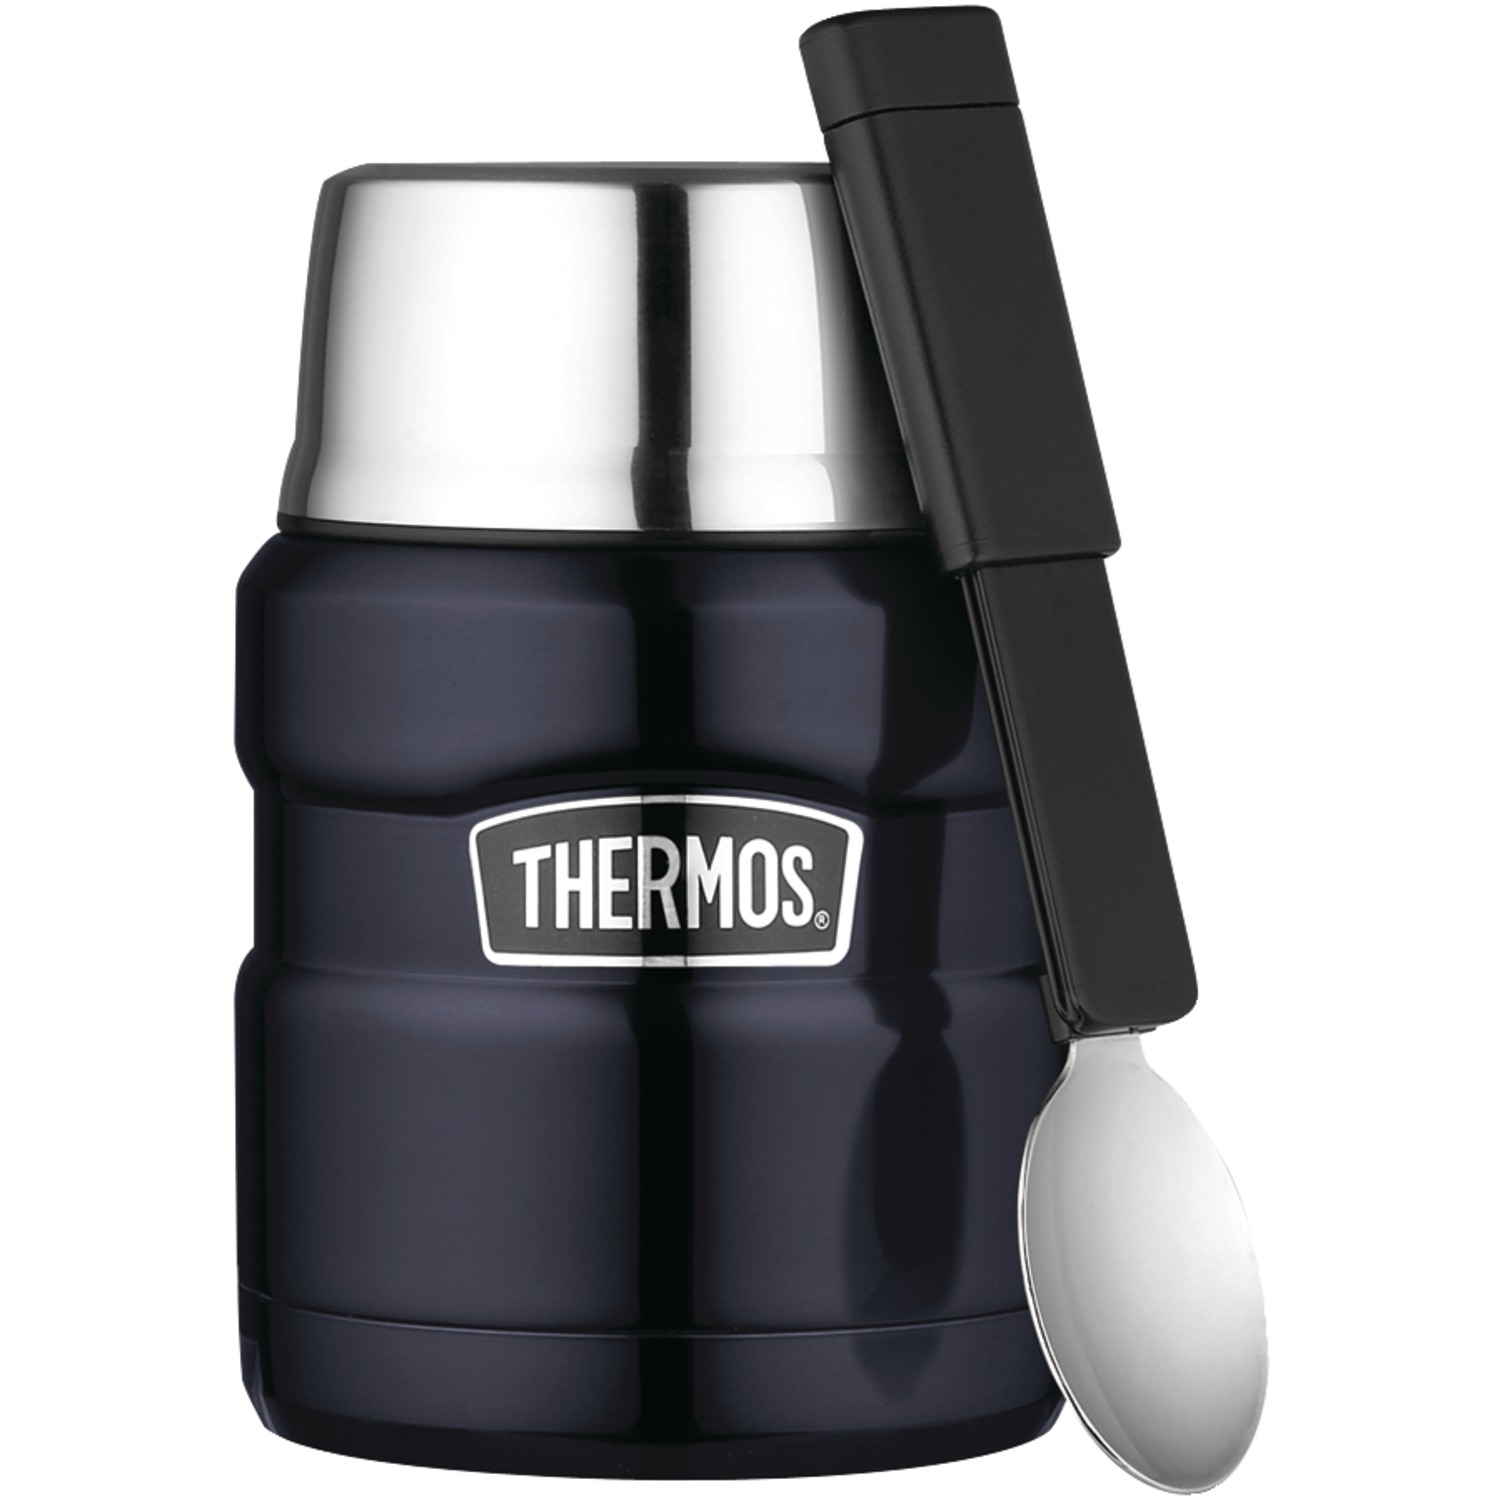 Thermos SK3000MB4 16-ounce Stainless Steel Vacuum Insulated King Food Jar With Spoon